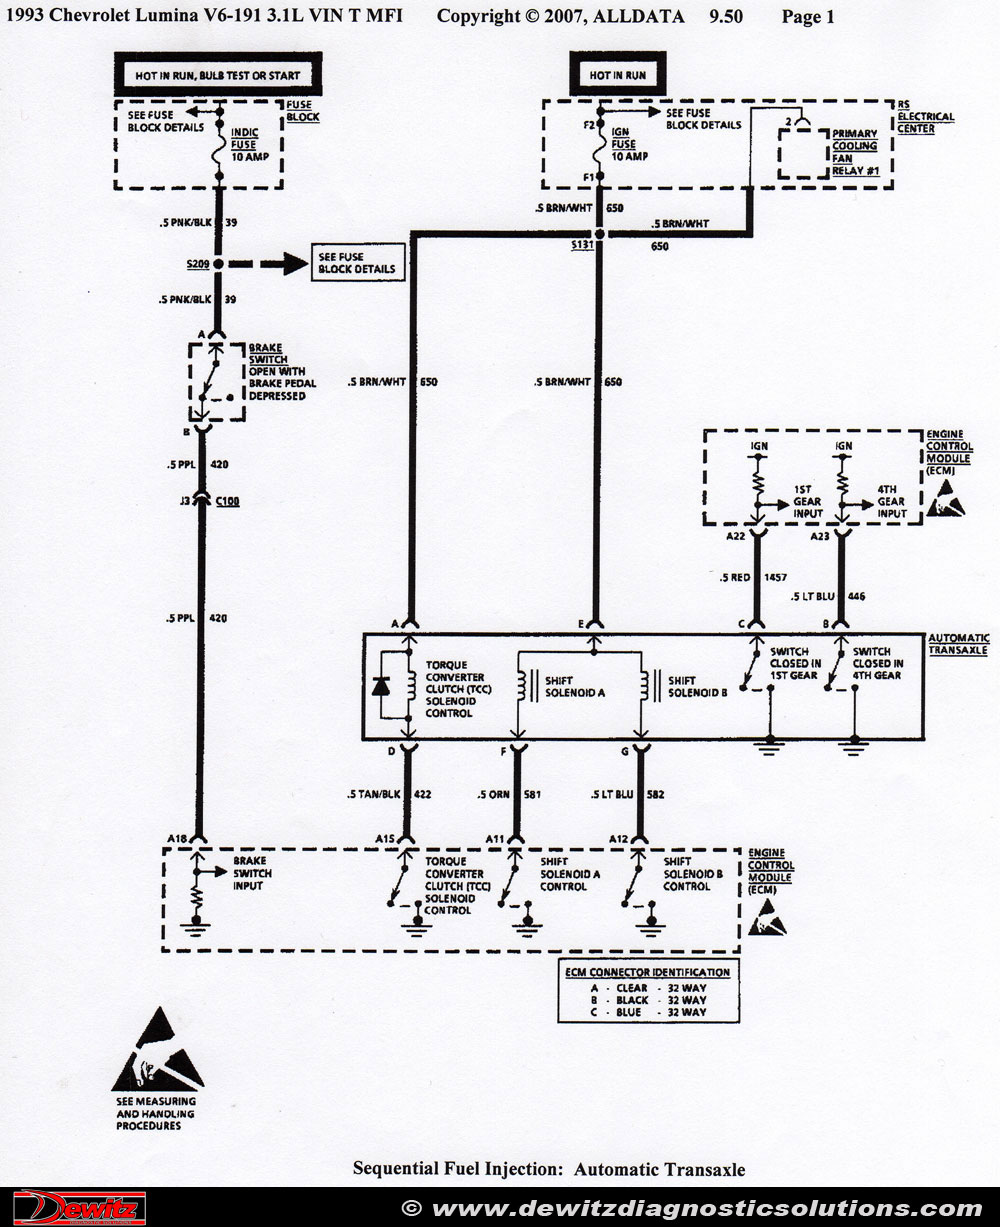 1995 Lumina Motor Diagram Not Lossing Wiring Pontiac Grand Prix 1990 Chevy Diagrams Schema Rh 53 Verena Hoegerl De